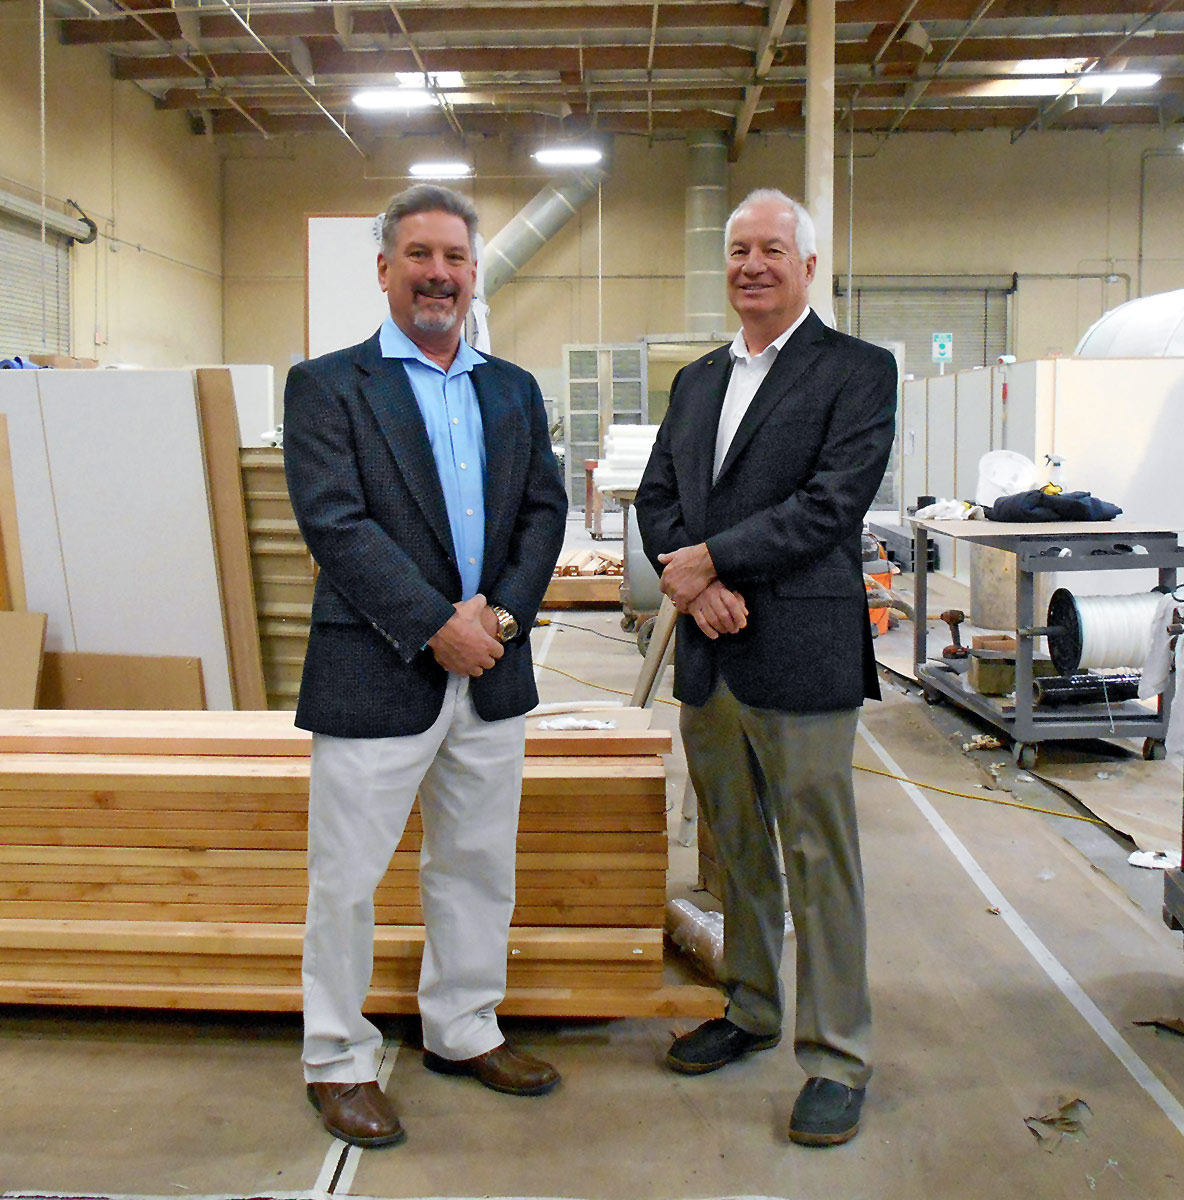 Peabody Engineering Owners Mark and Larry on the warehouse floor